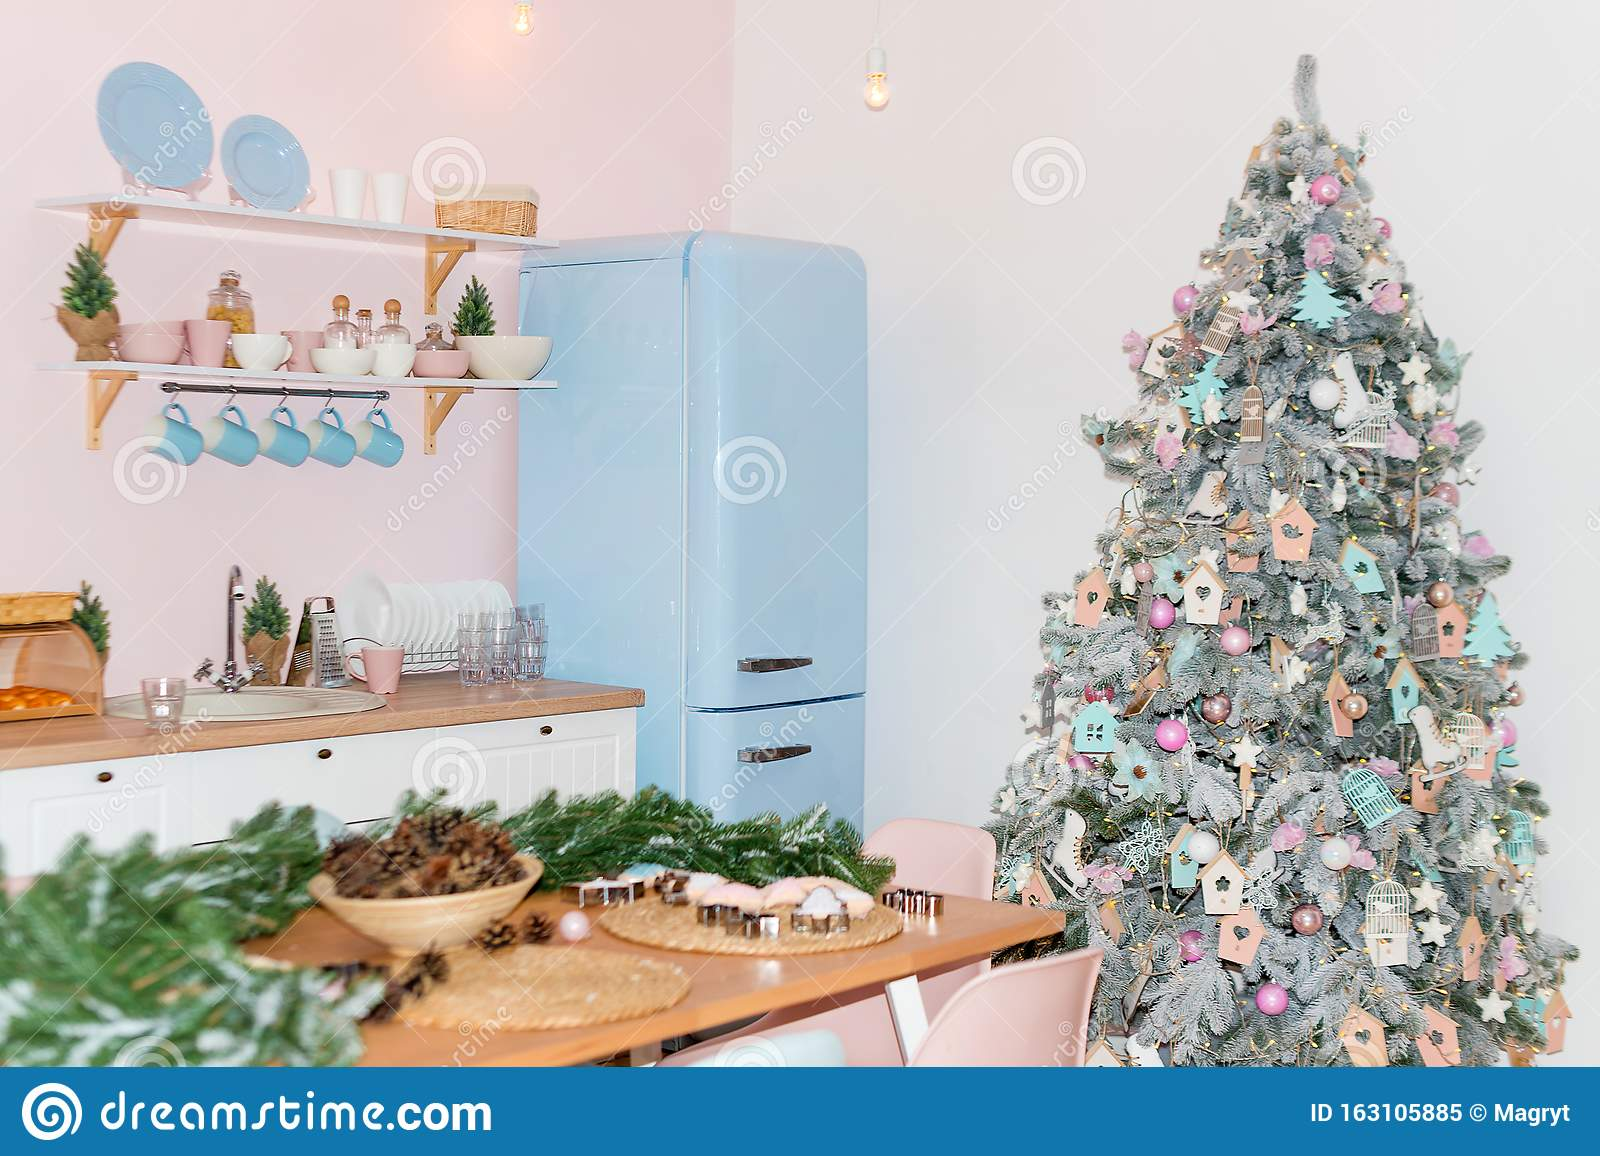 Pink And Blue Pastel Modern Kitchen Interior Decorated With Christmas Tree And Decorative Elements New Year Decorations Happy Stock Image Image Of Dining Floor 163105885